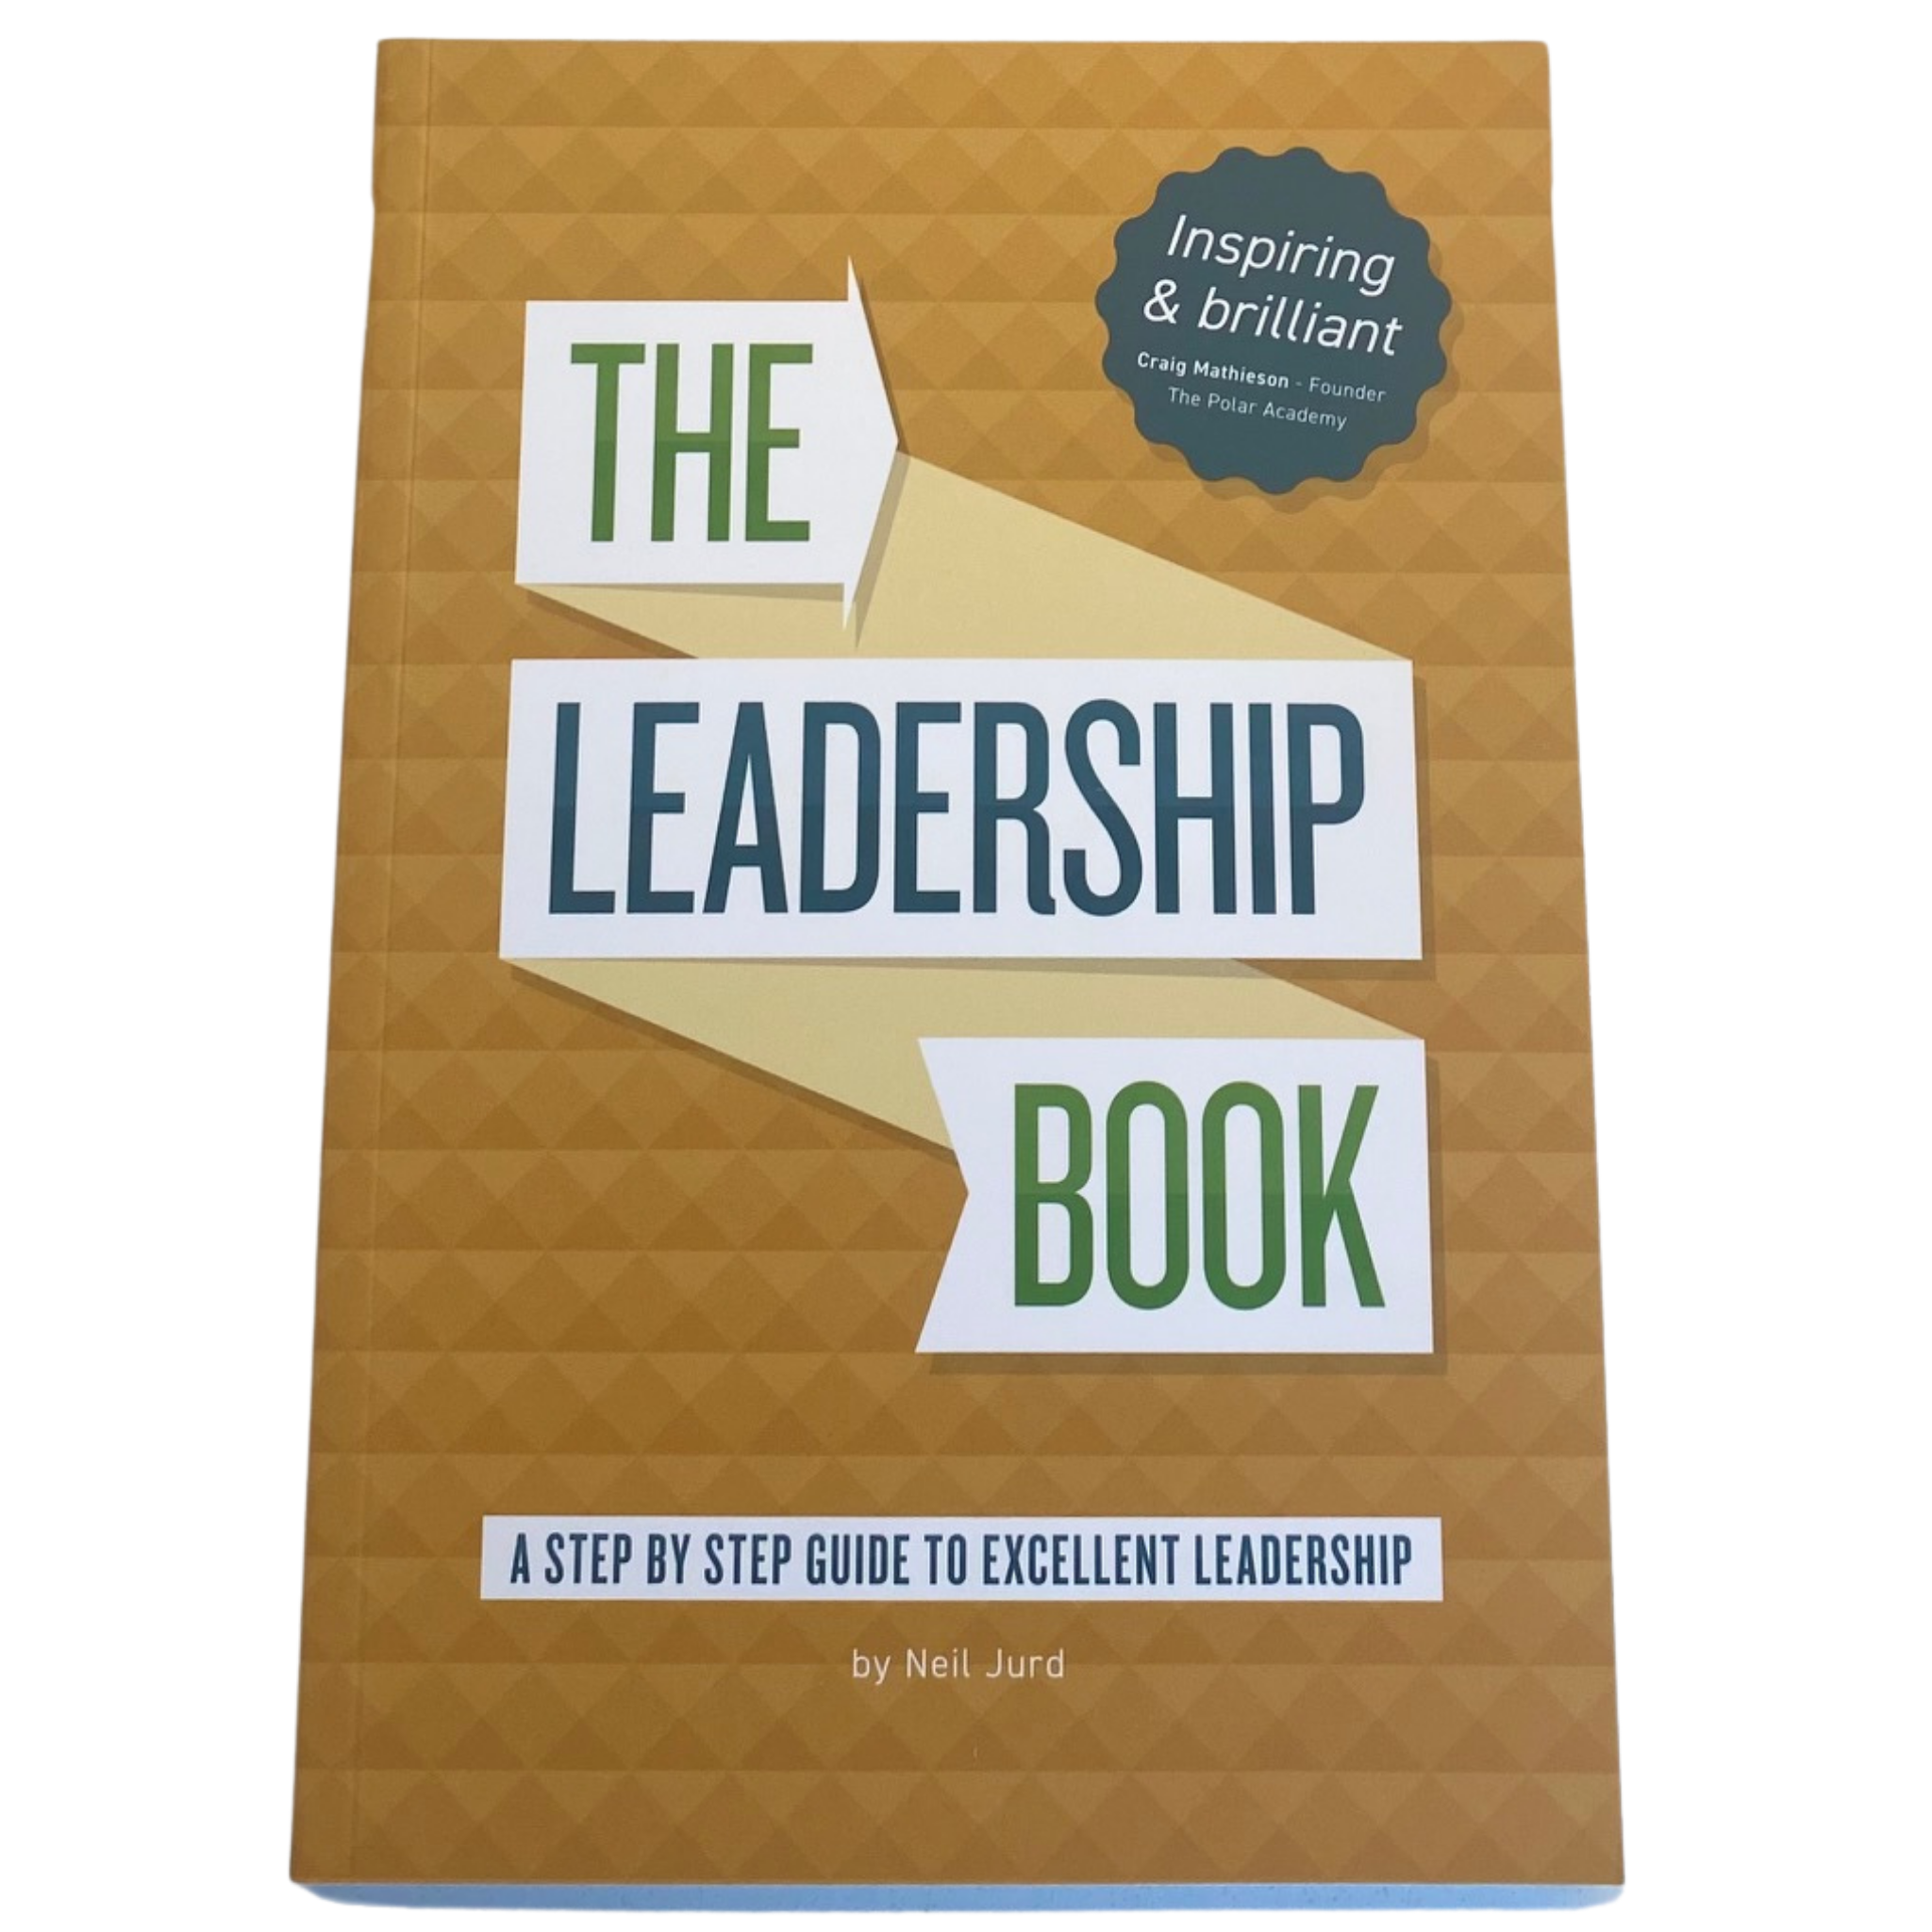 Book- The Leadership Book - Neil Jurd